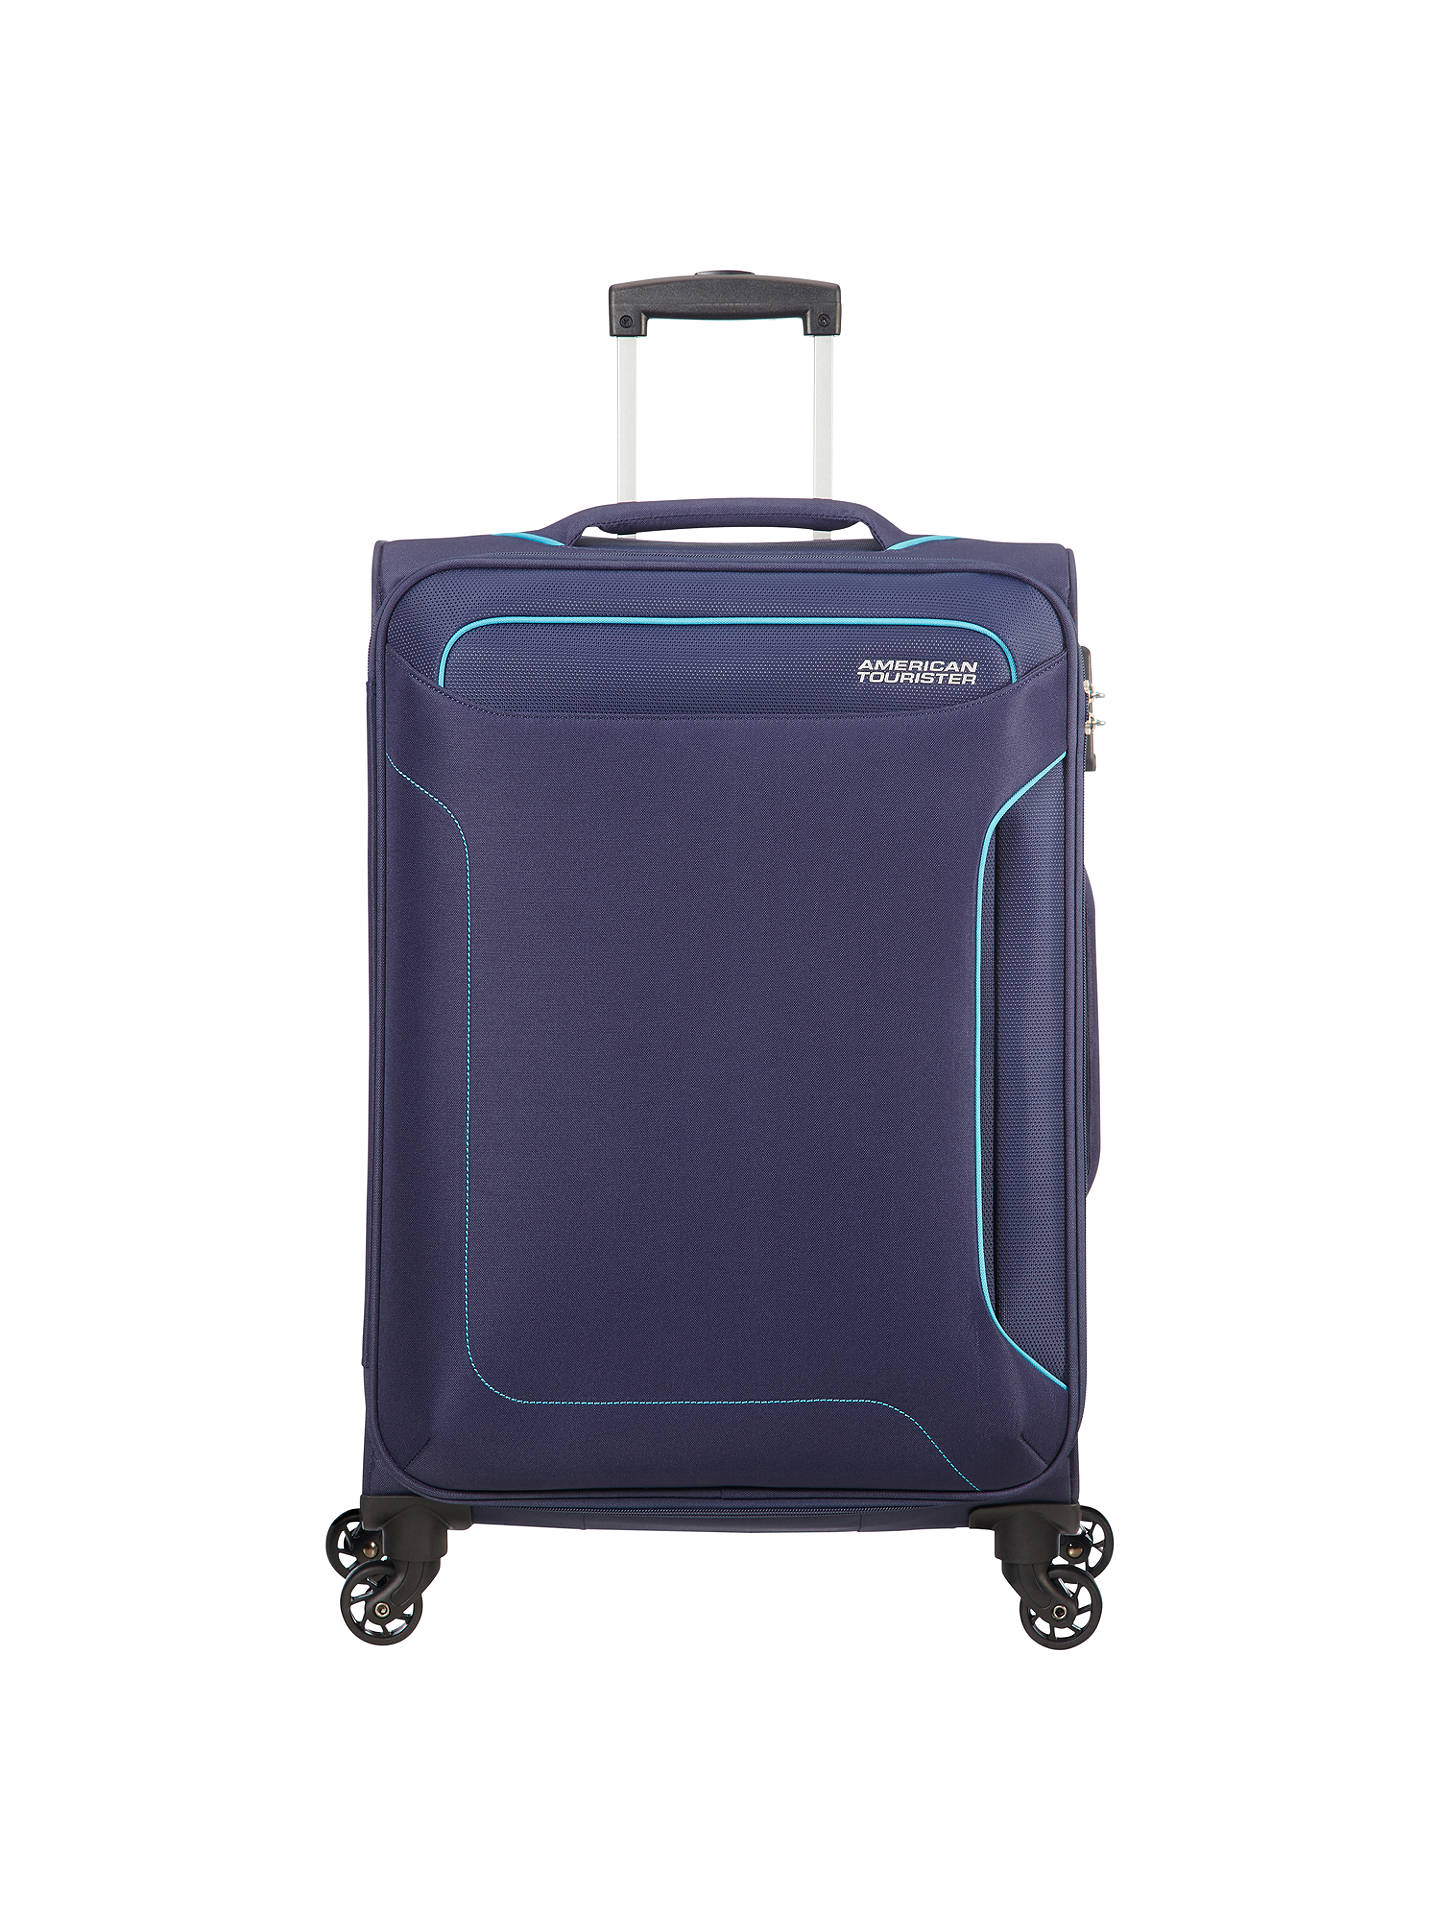 29d360b891 American Tourister Holiday Heat 4-Spinner 67cm Medium Suitcase at ...